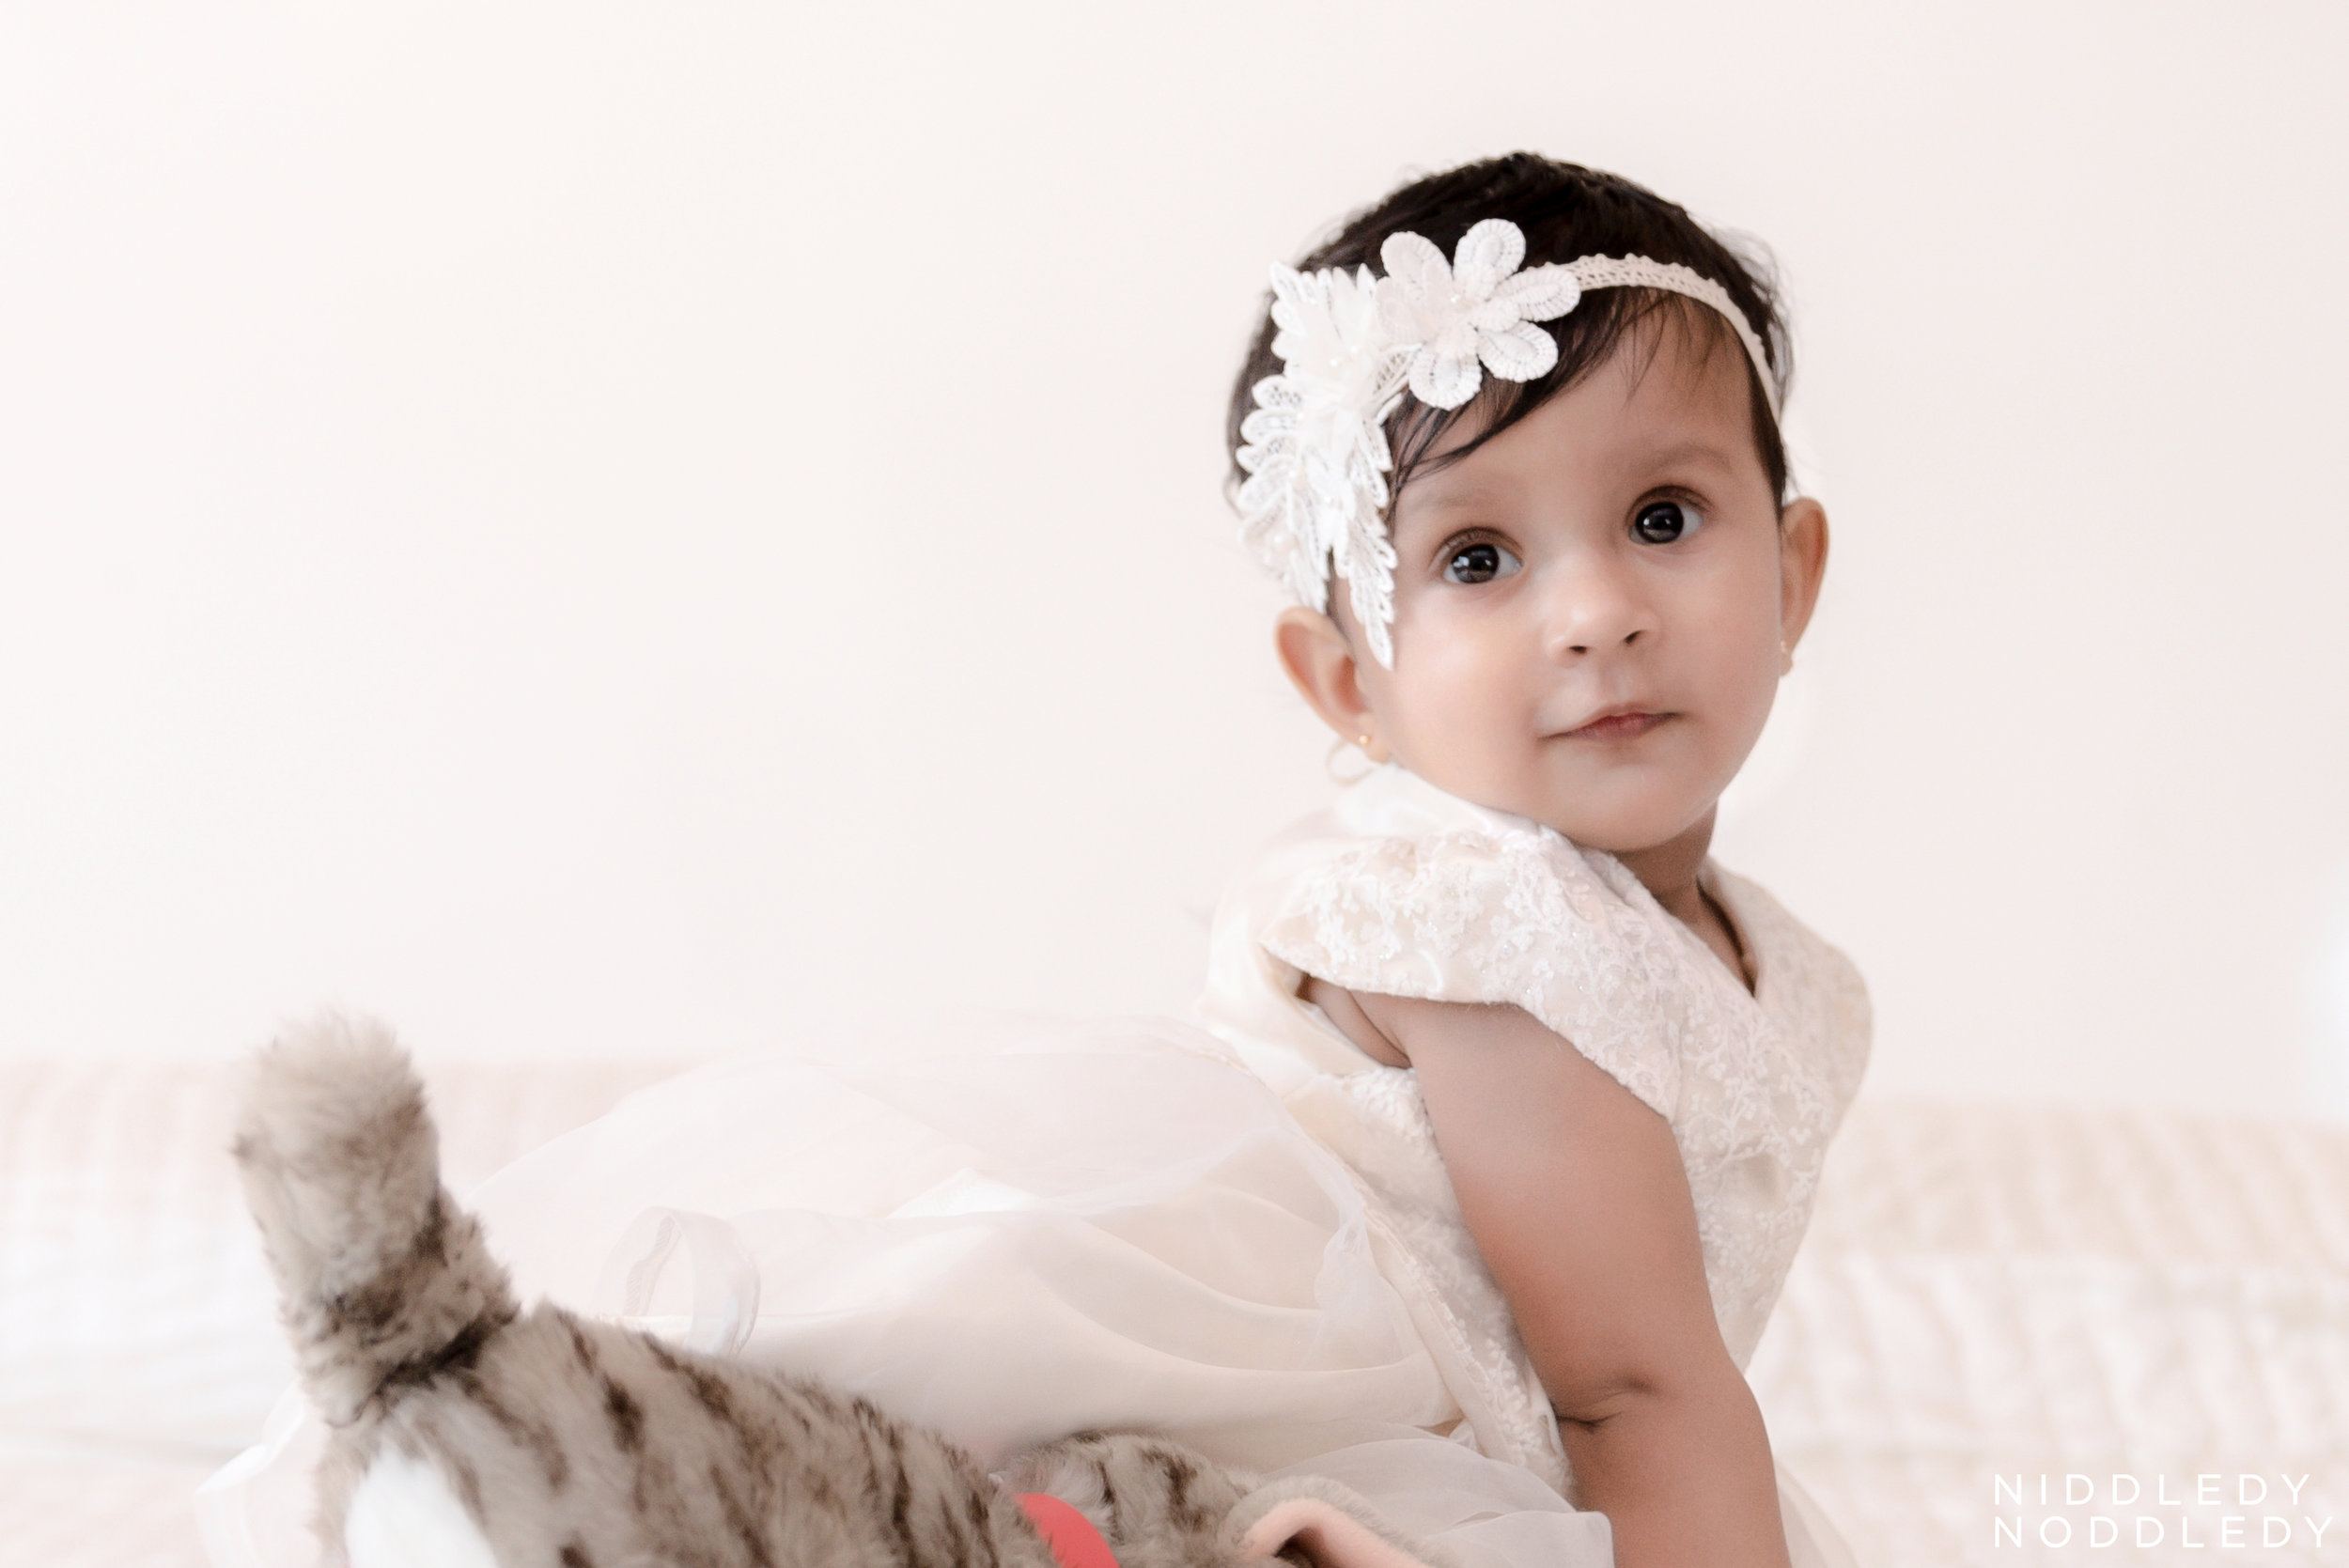 Anaisha Baby Photoshoot ❤ NiddledyNoddledy.com ~ Bumps to Babies Photography, Kolkata - 138.jpg